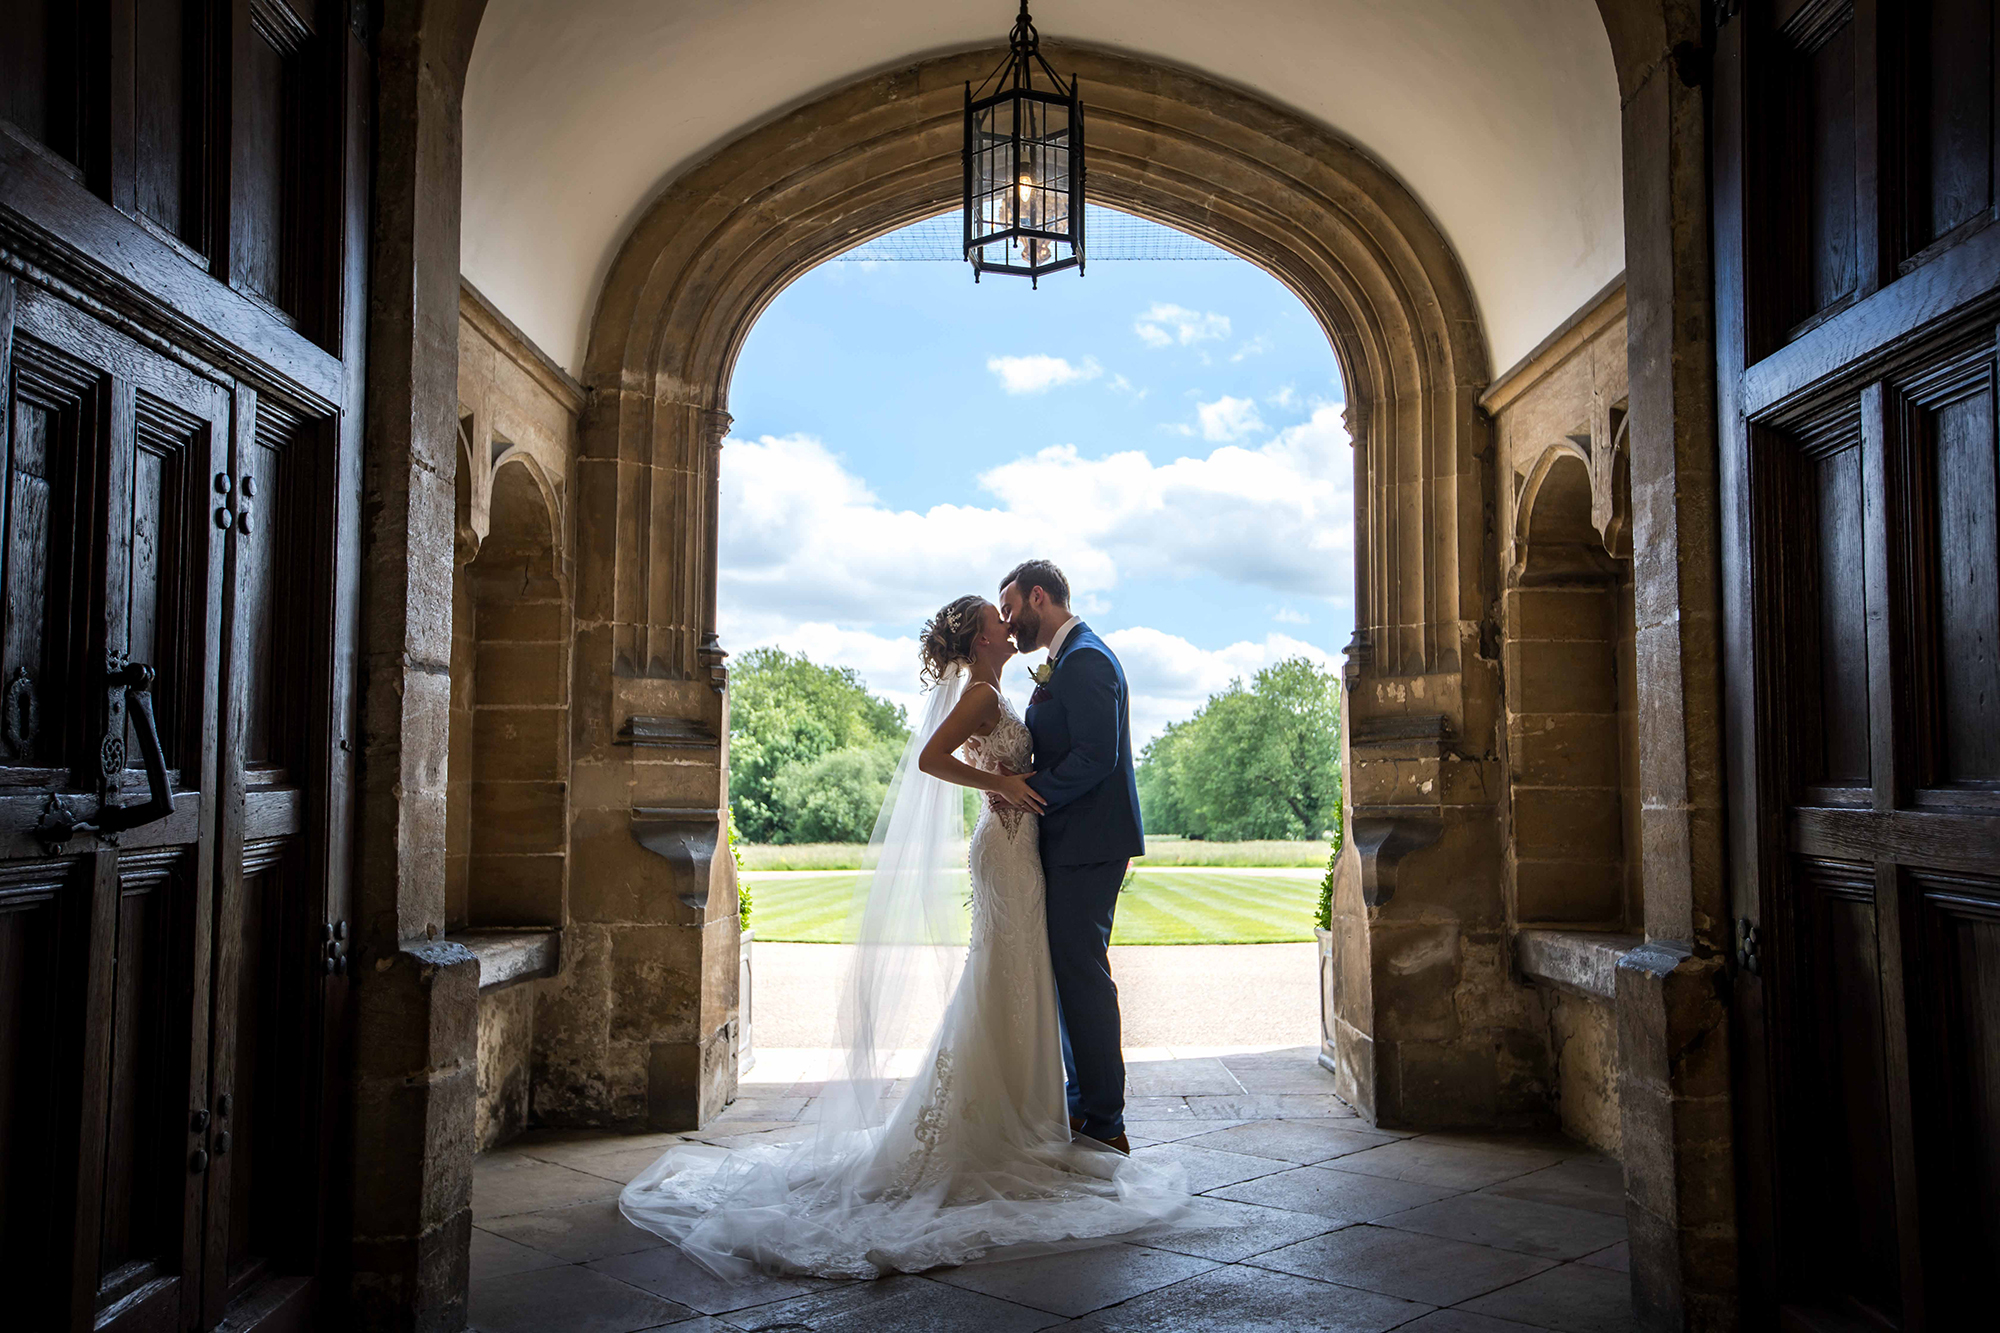 Newly married couple kissing in the entrance to Hengrave Hall